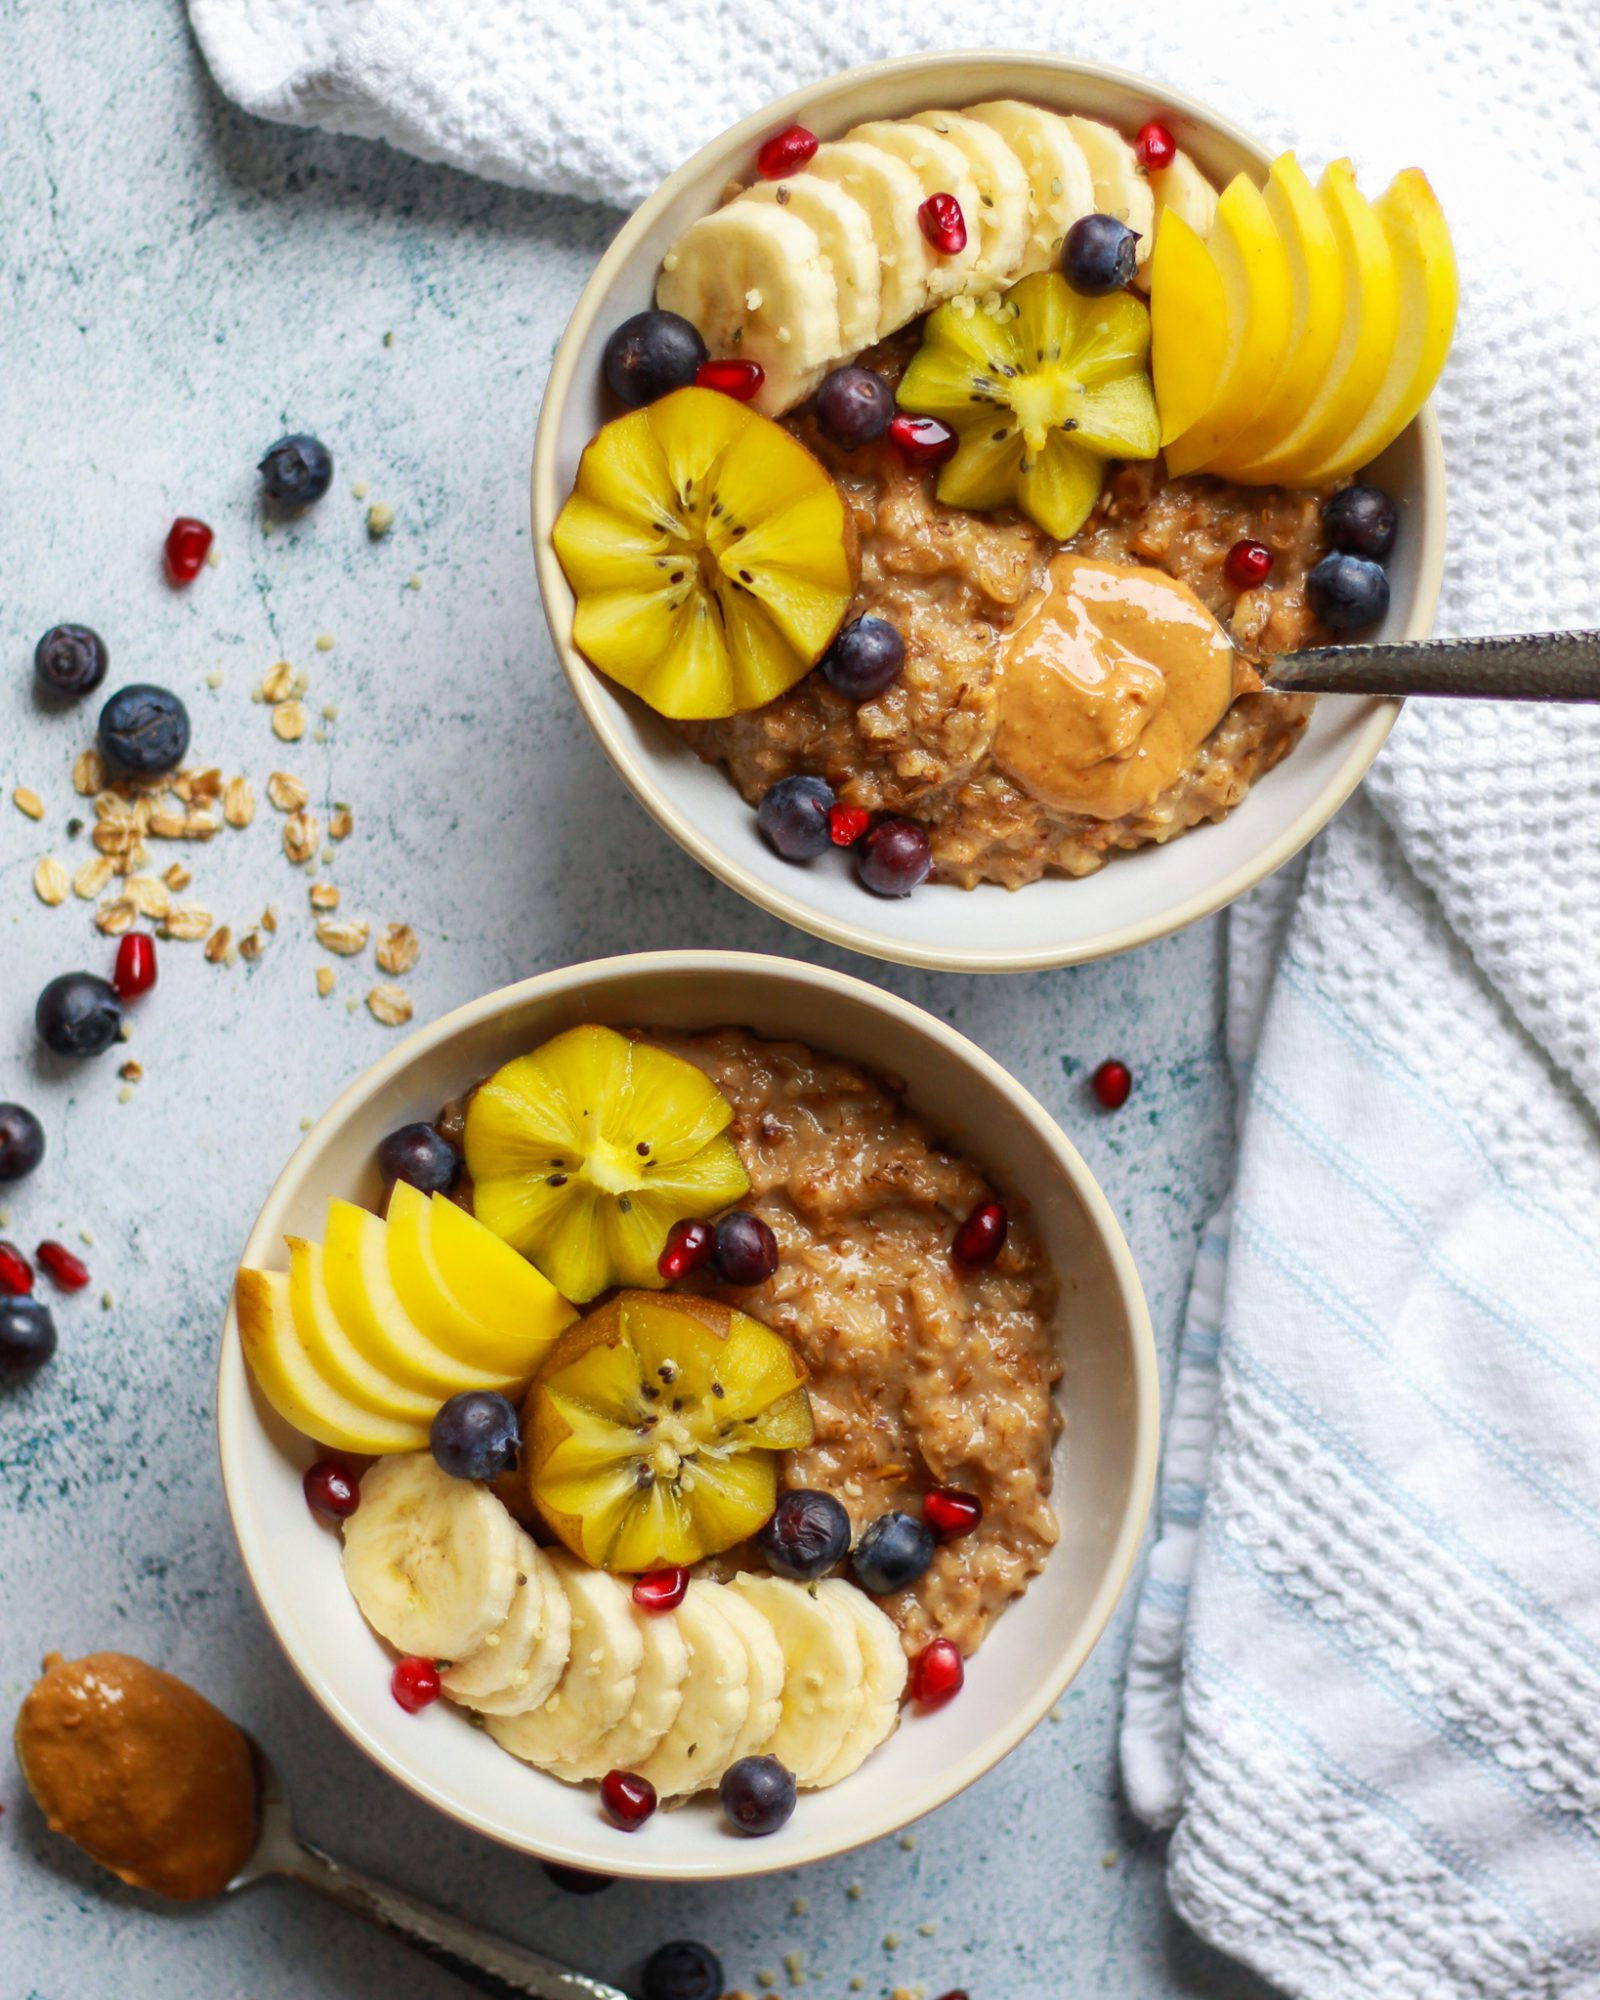 This easy oatmeal recipe is healthy, vegan, gluten-free and delicious! It's so cozy and the perfect easy breakfast for a chilly morning.